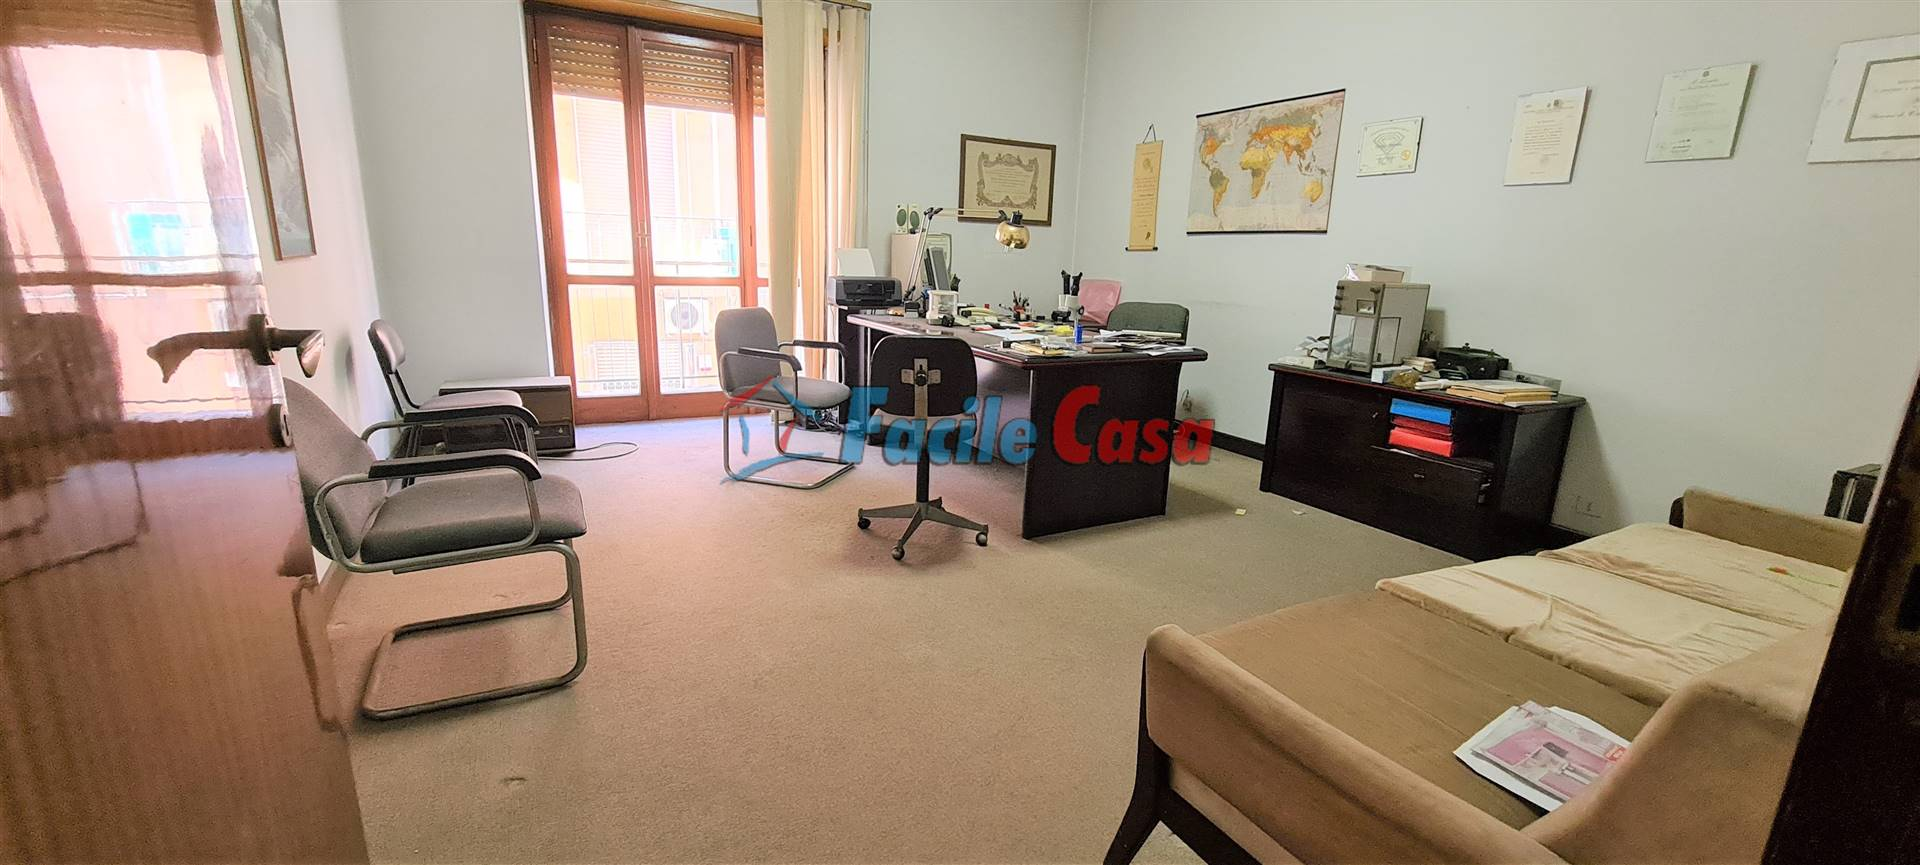 FORMIA, Apartment for sale of 97 Sq. mt., Be restored, Heating Individual heating system, Energetic class: G, placed at 2° on 3, composed by: 3 Rooms,